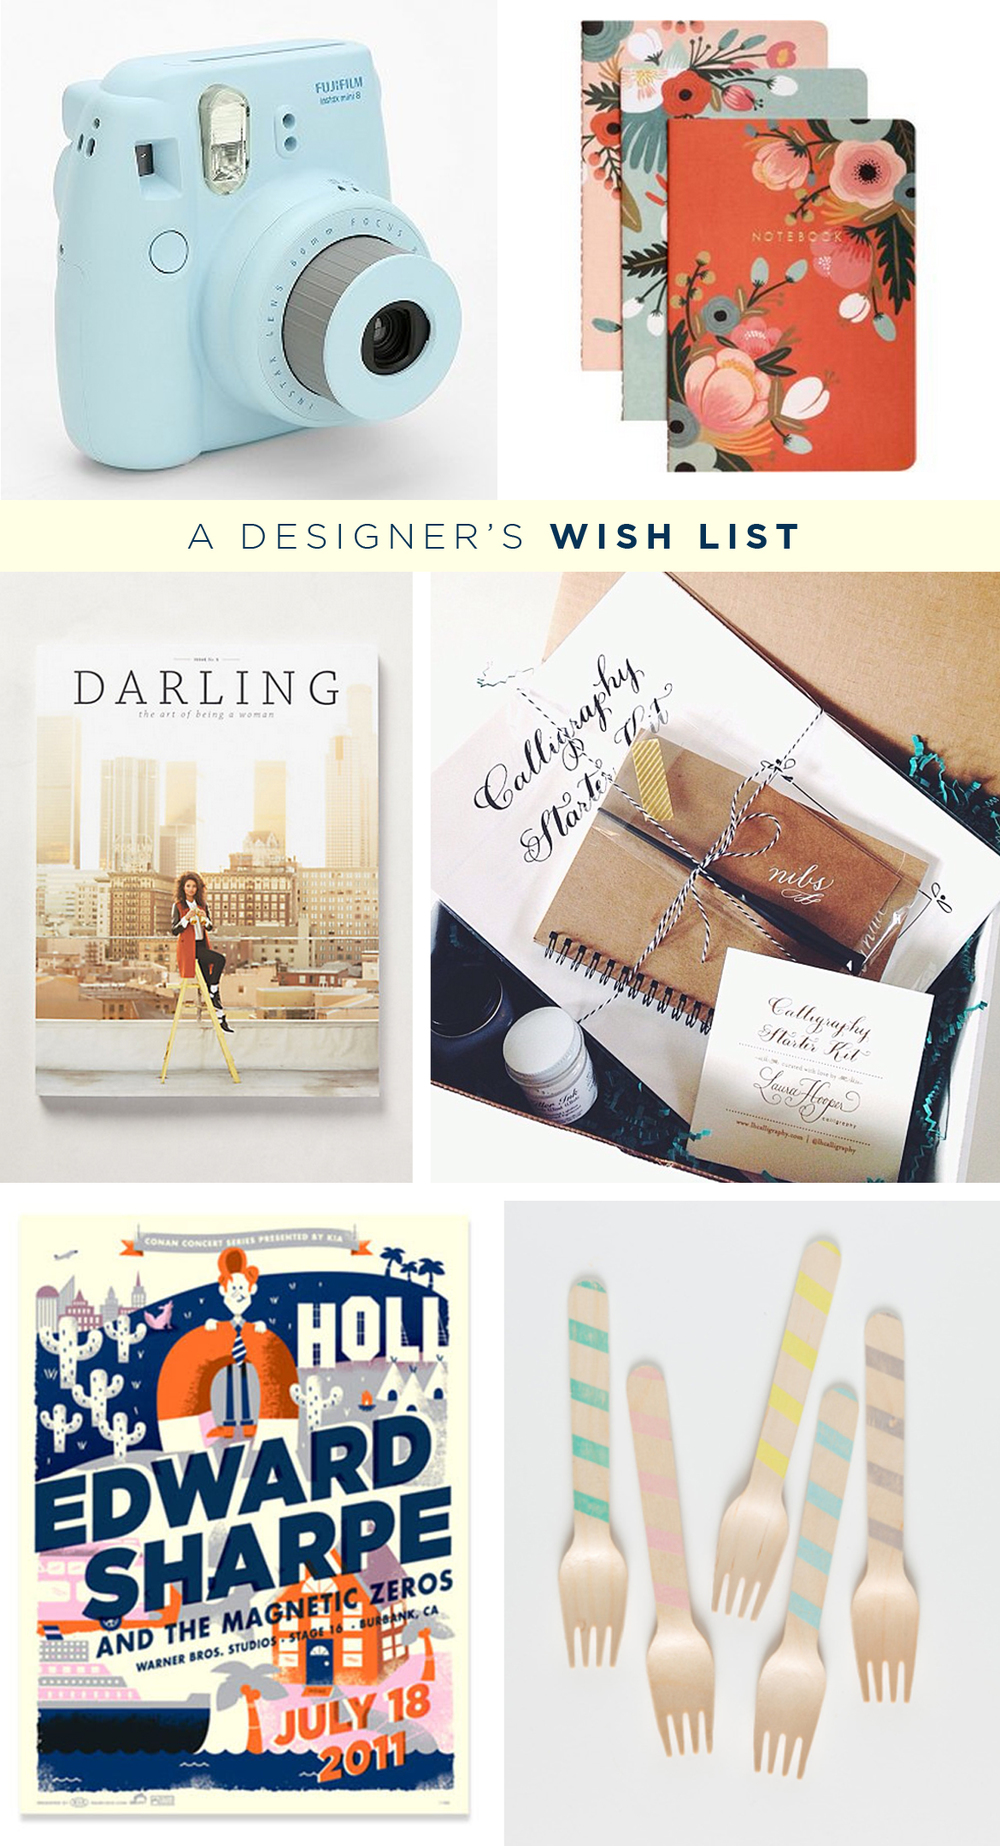 A-Designer's-Wish-List.jpg